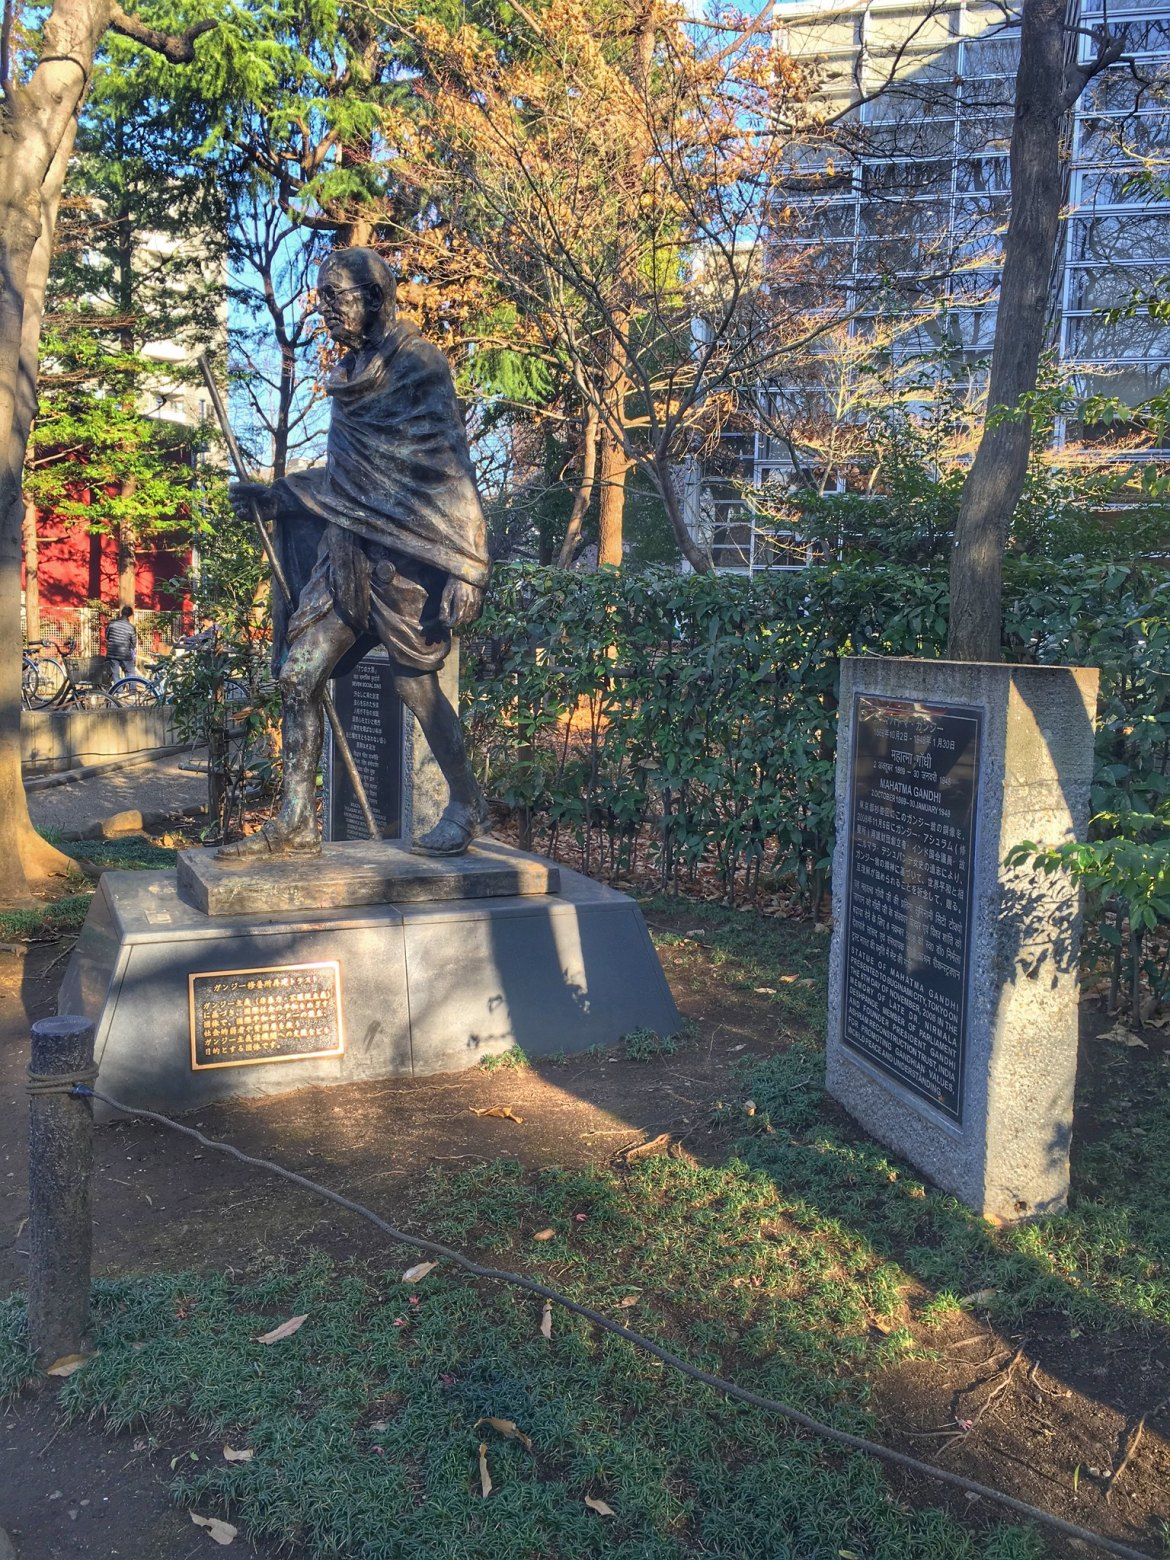 Mahatma Gandhi statue at the suginami Ward Library